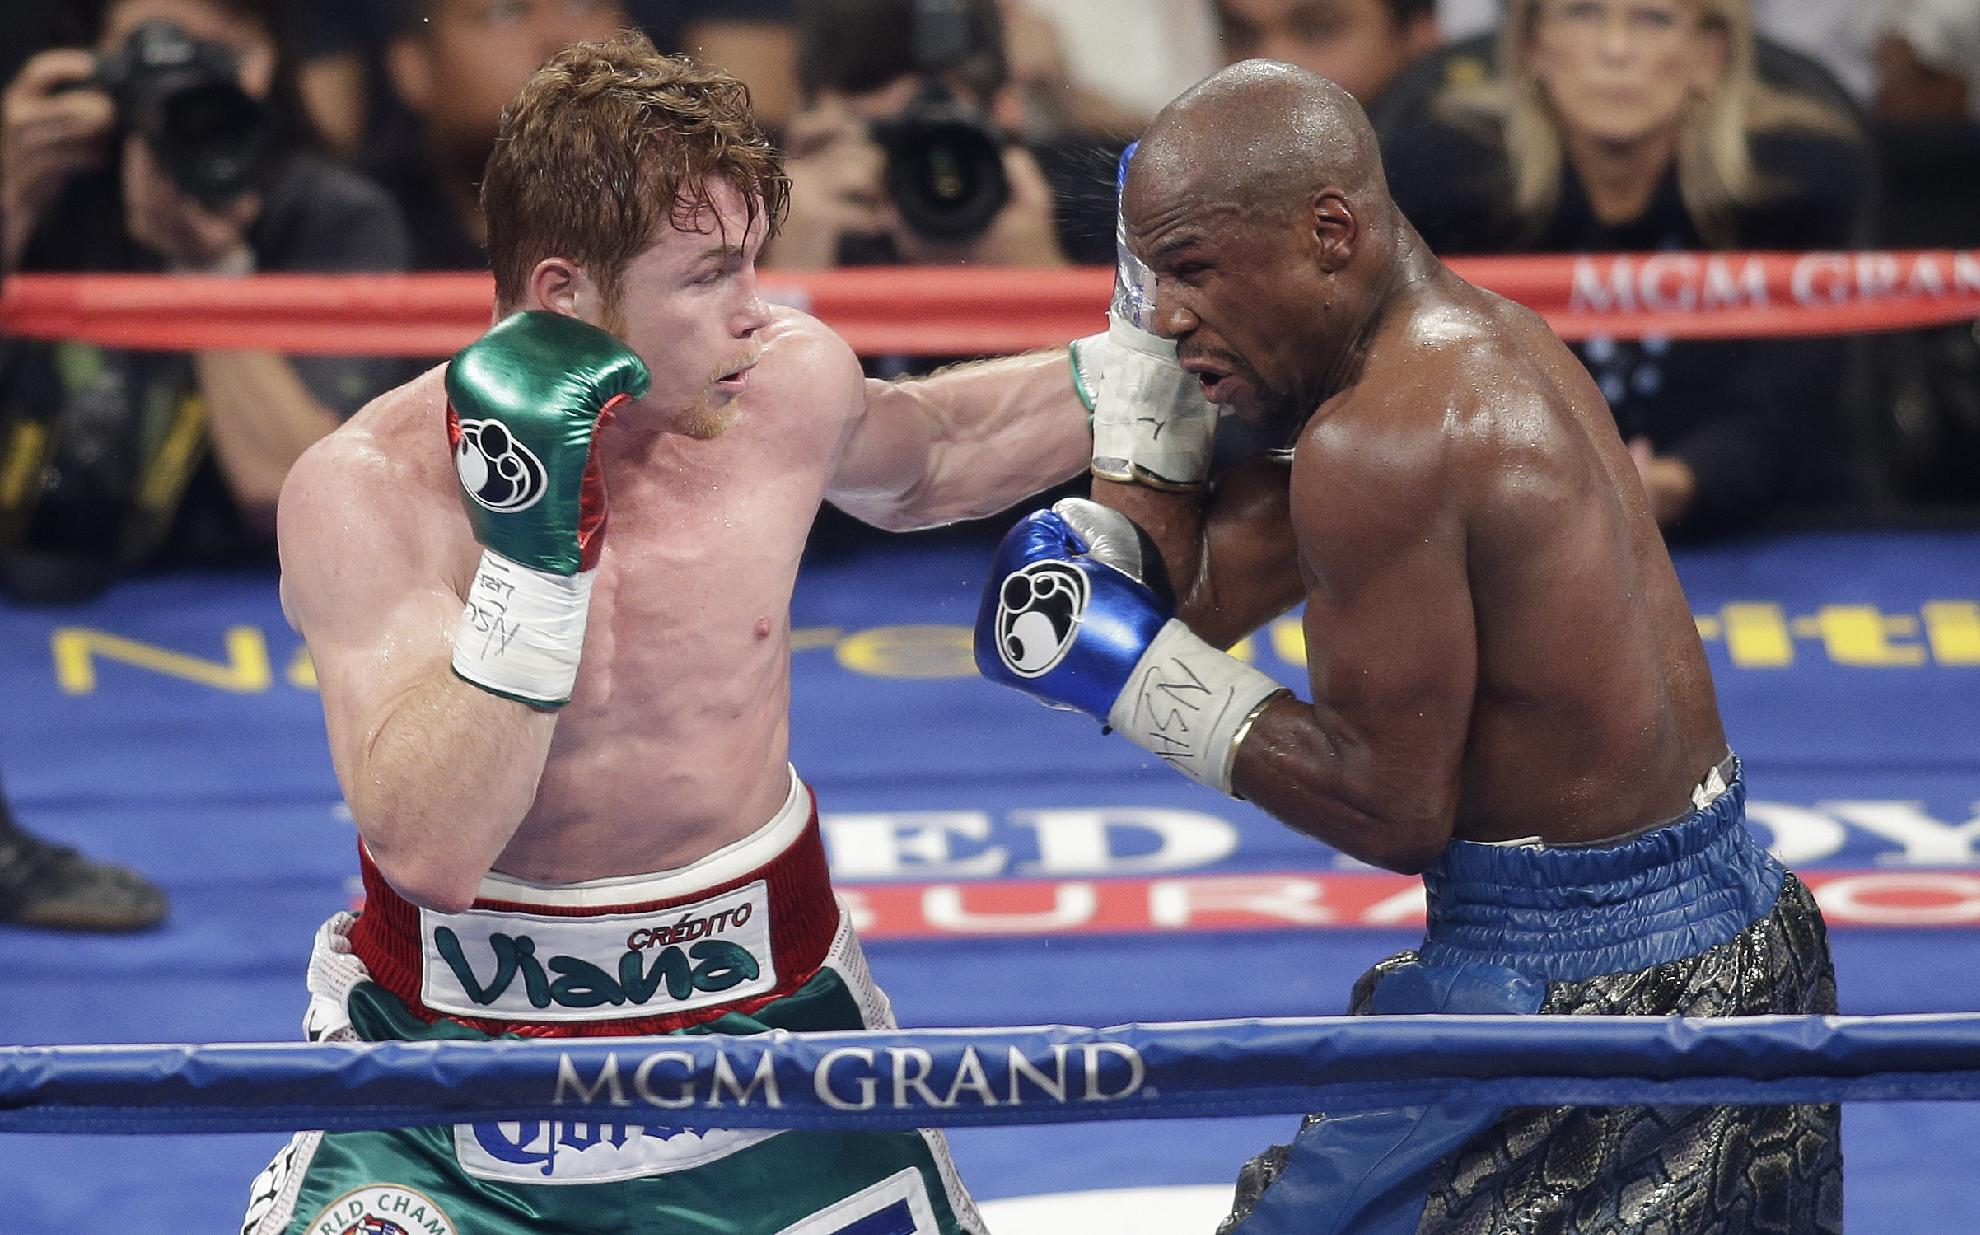 Canelo Alvarez, left, throws a punch against Floyd Mayweather Jr. during a 152-pound title fight, Saturday, Sept. 14, 2013, in Las Vegas